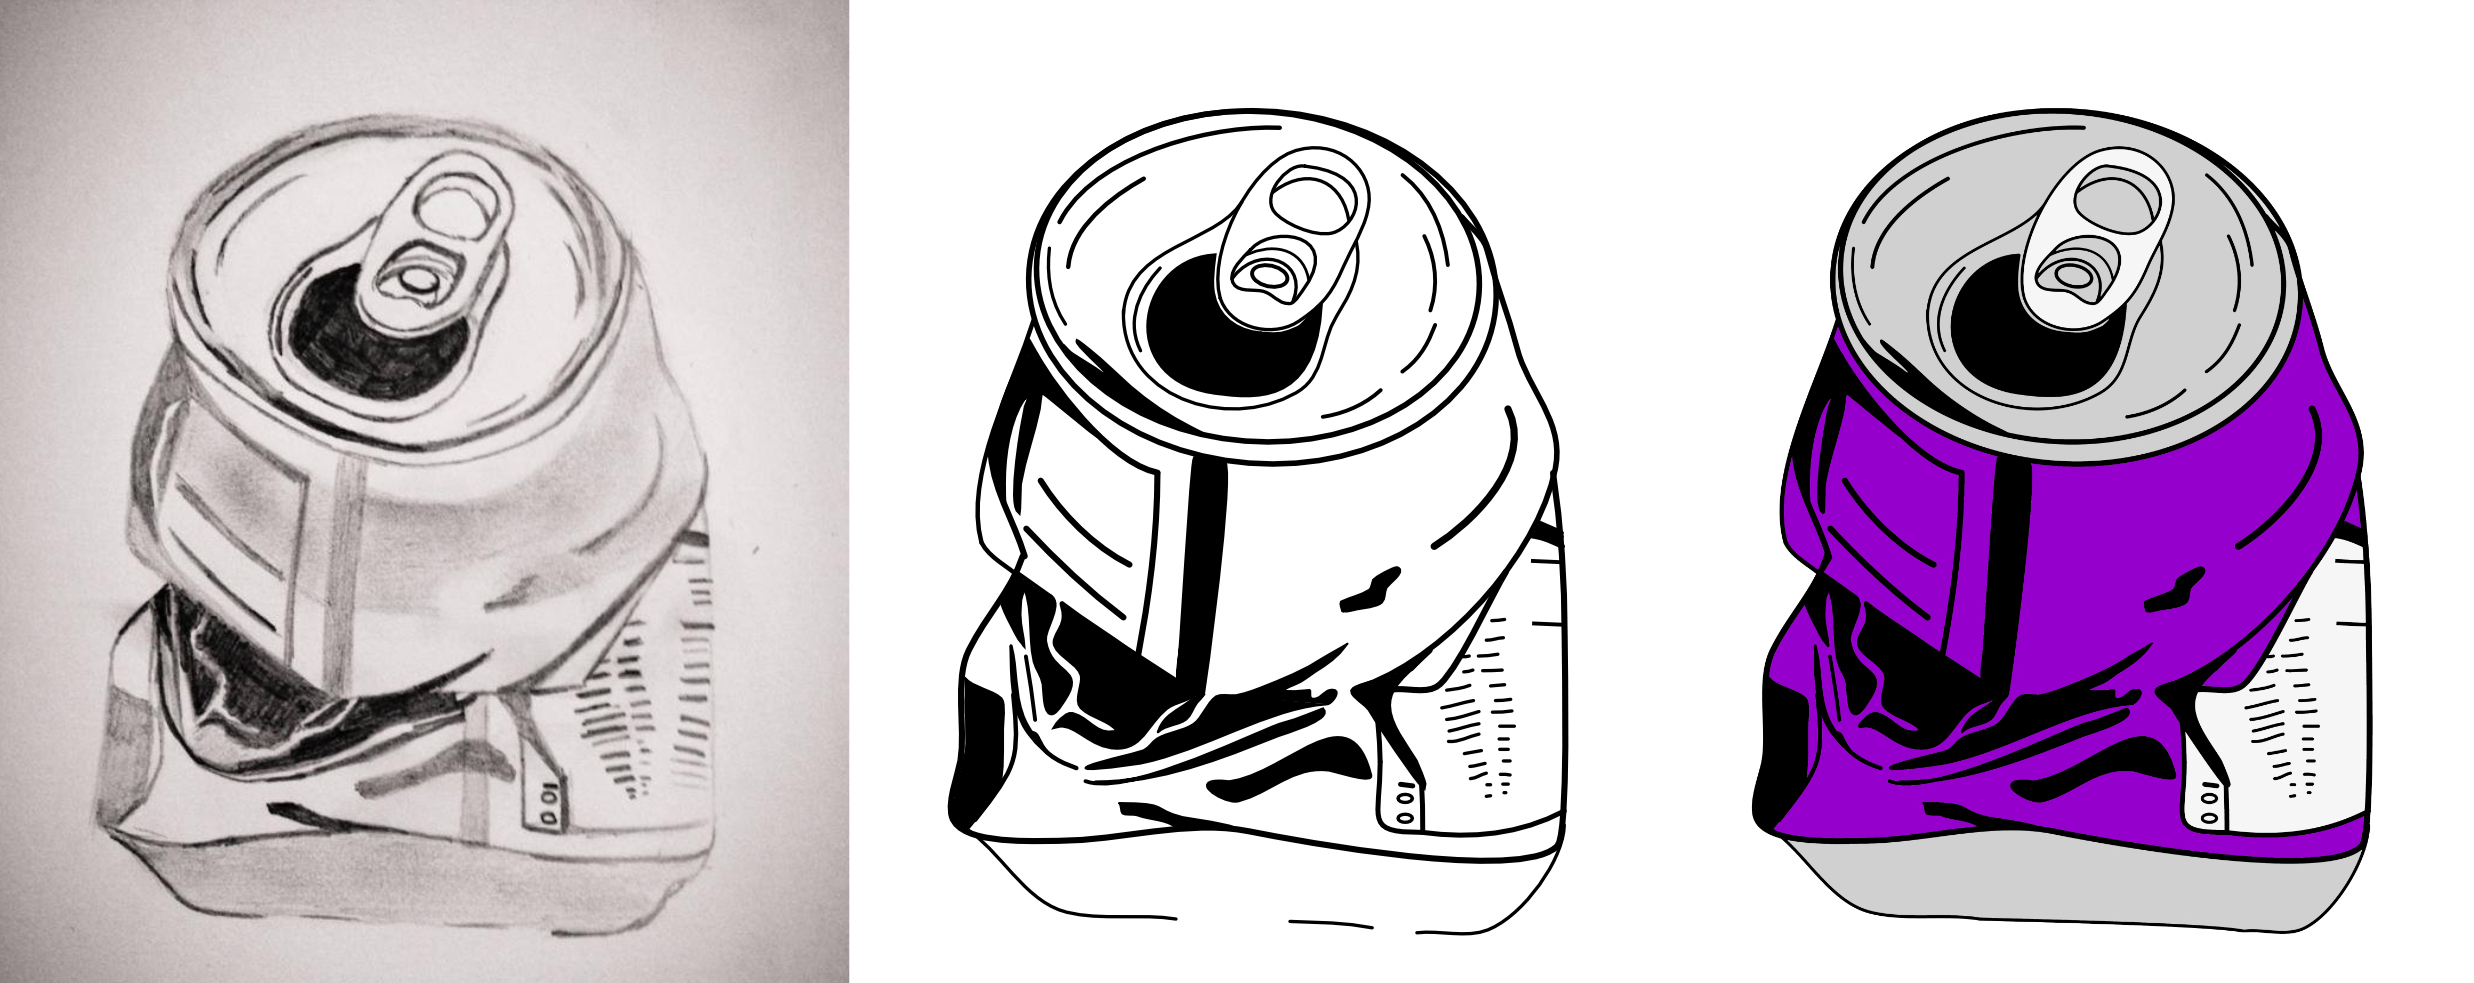 Sketches of coke cans used for the Seeking Yesterday rock album art